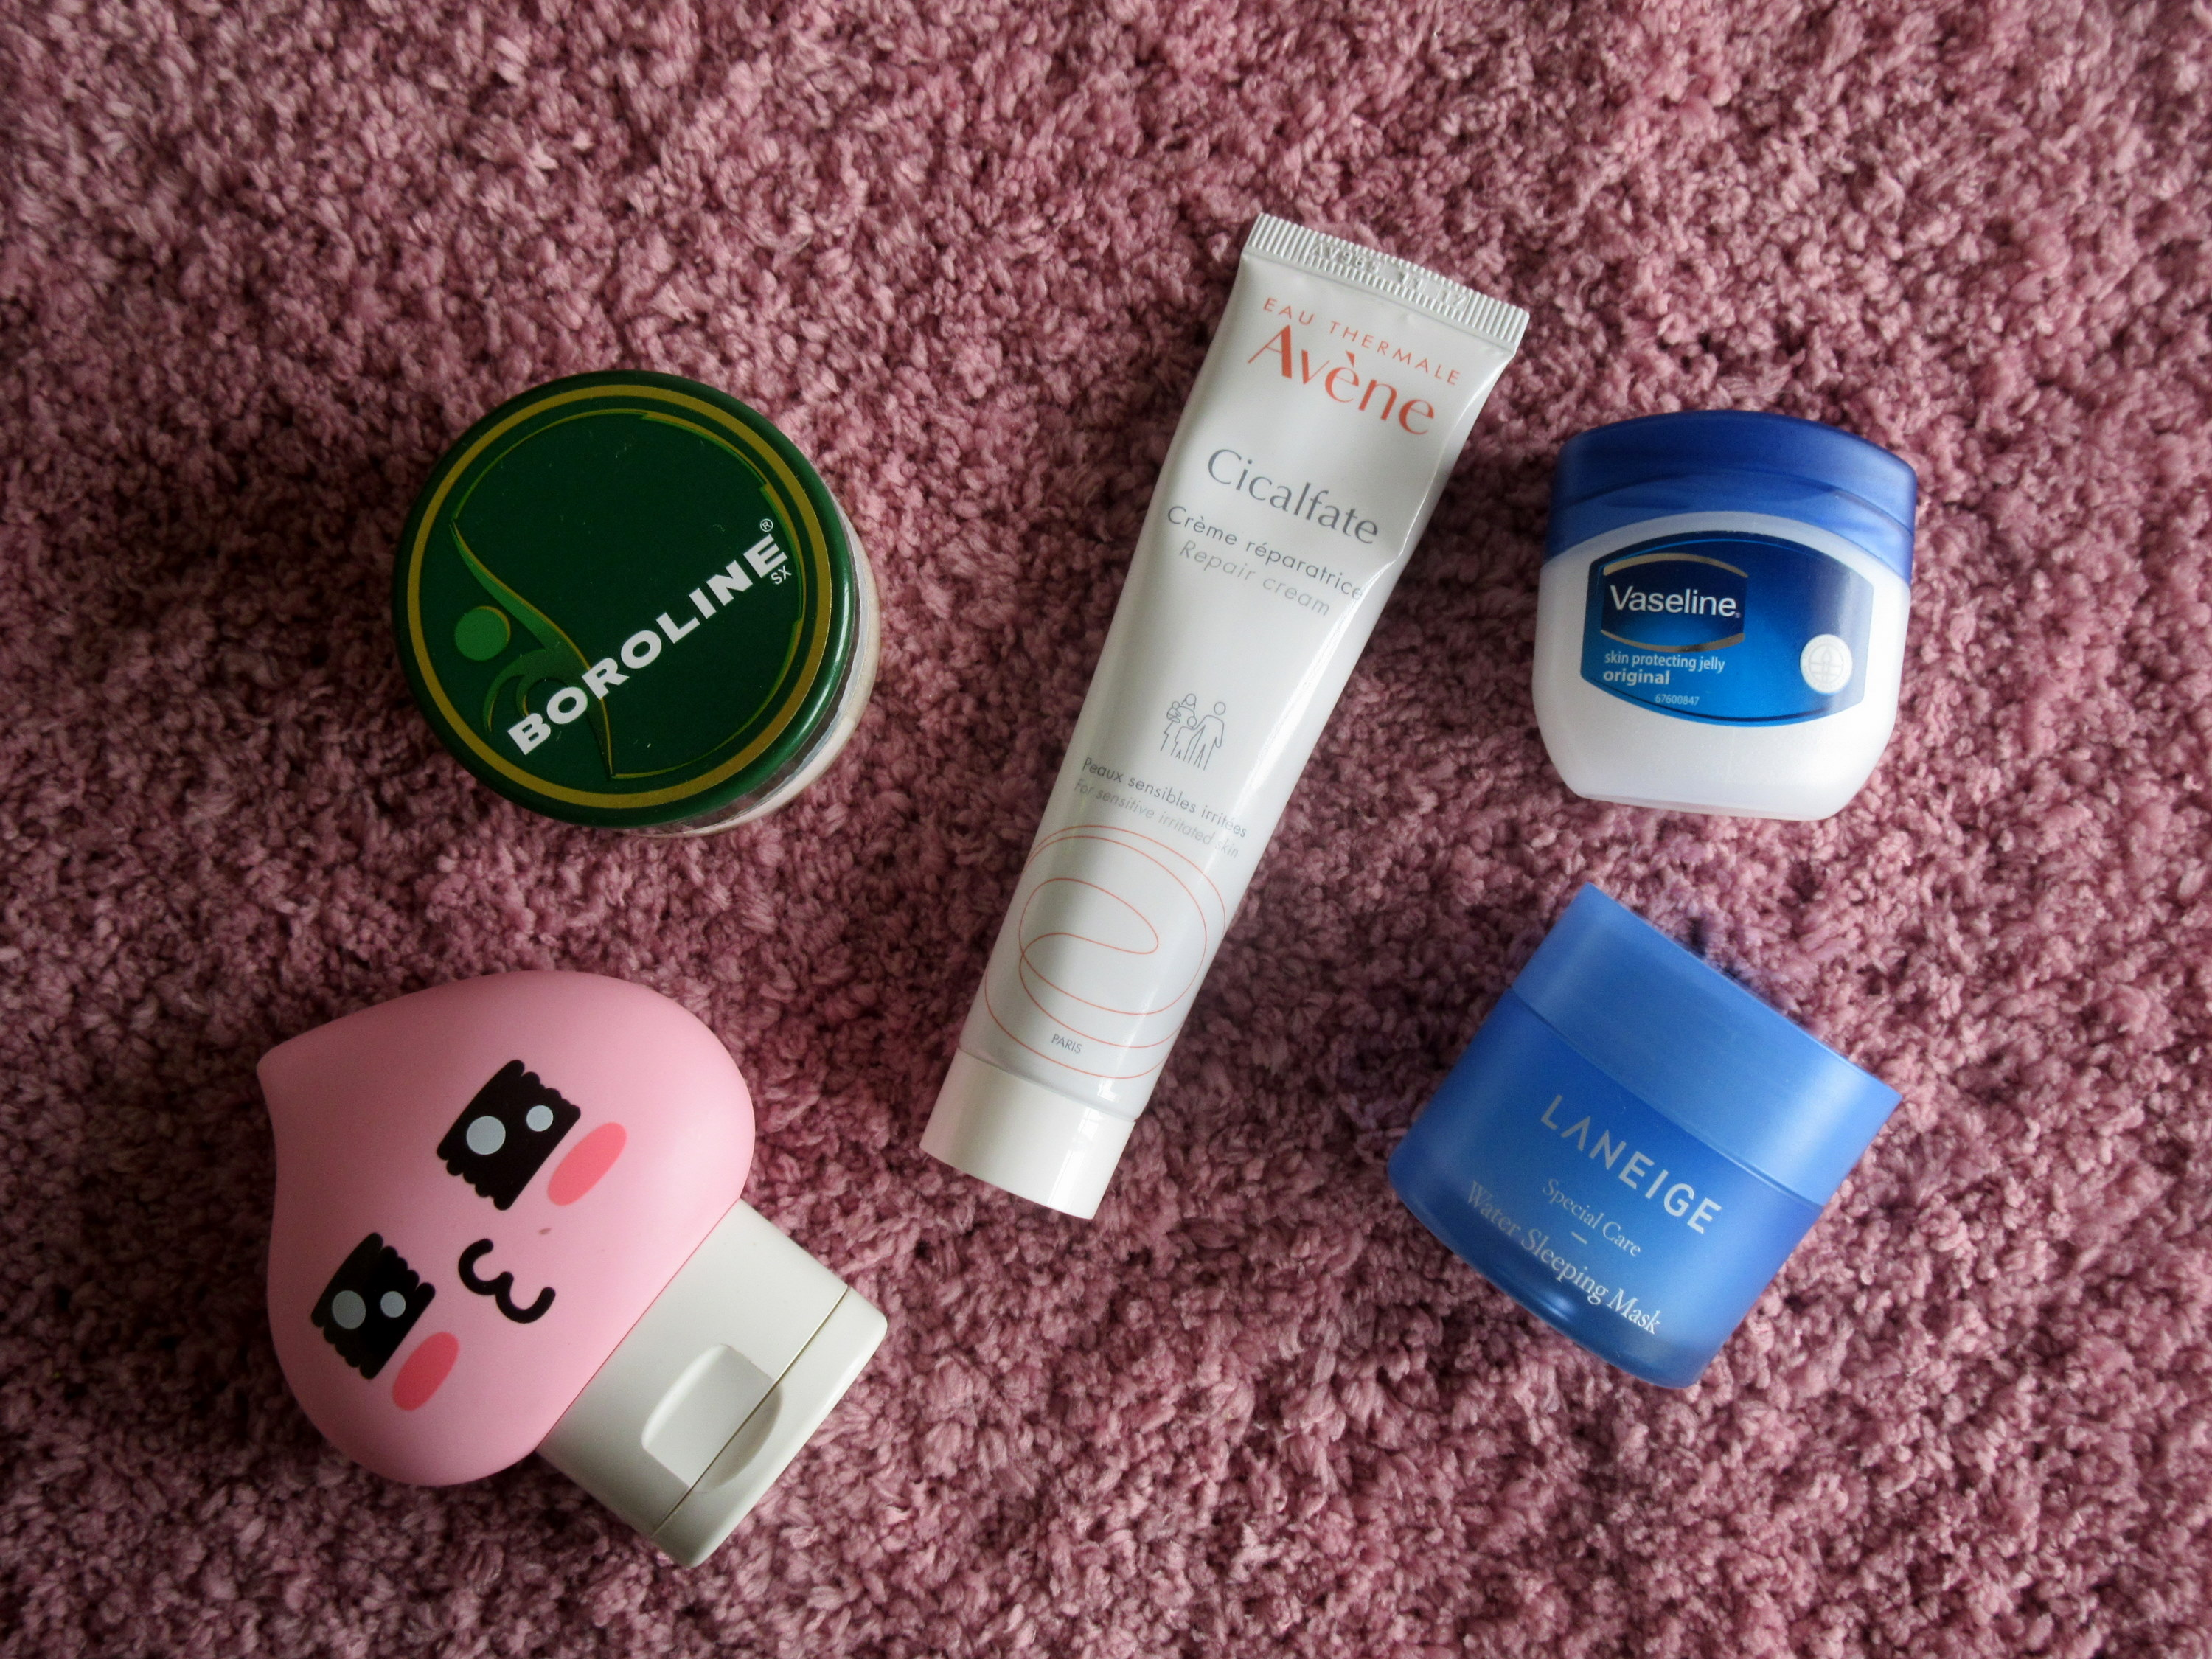 avene cicalfate repair cream, laneige water sleeping mask, boroline, vaseline